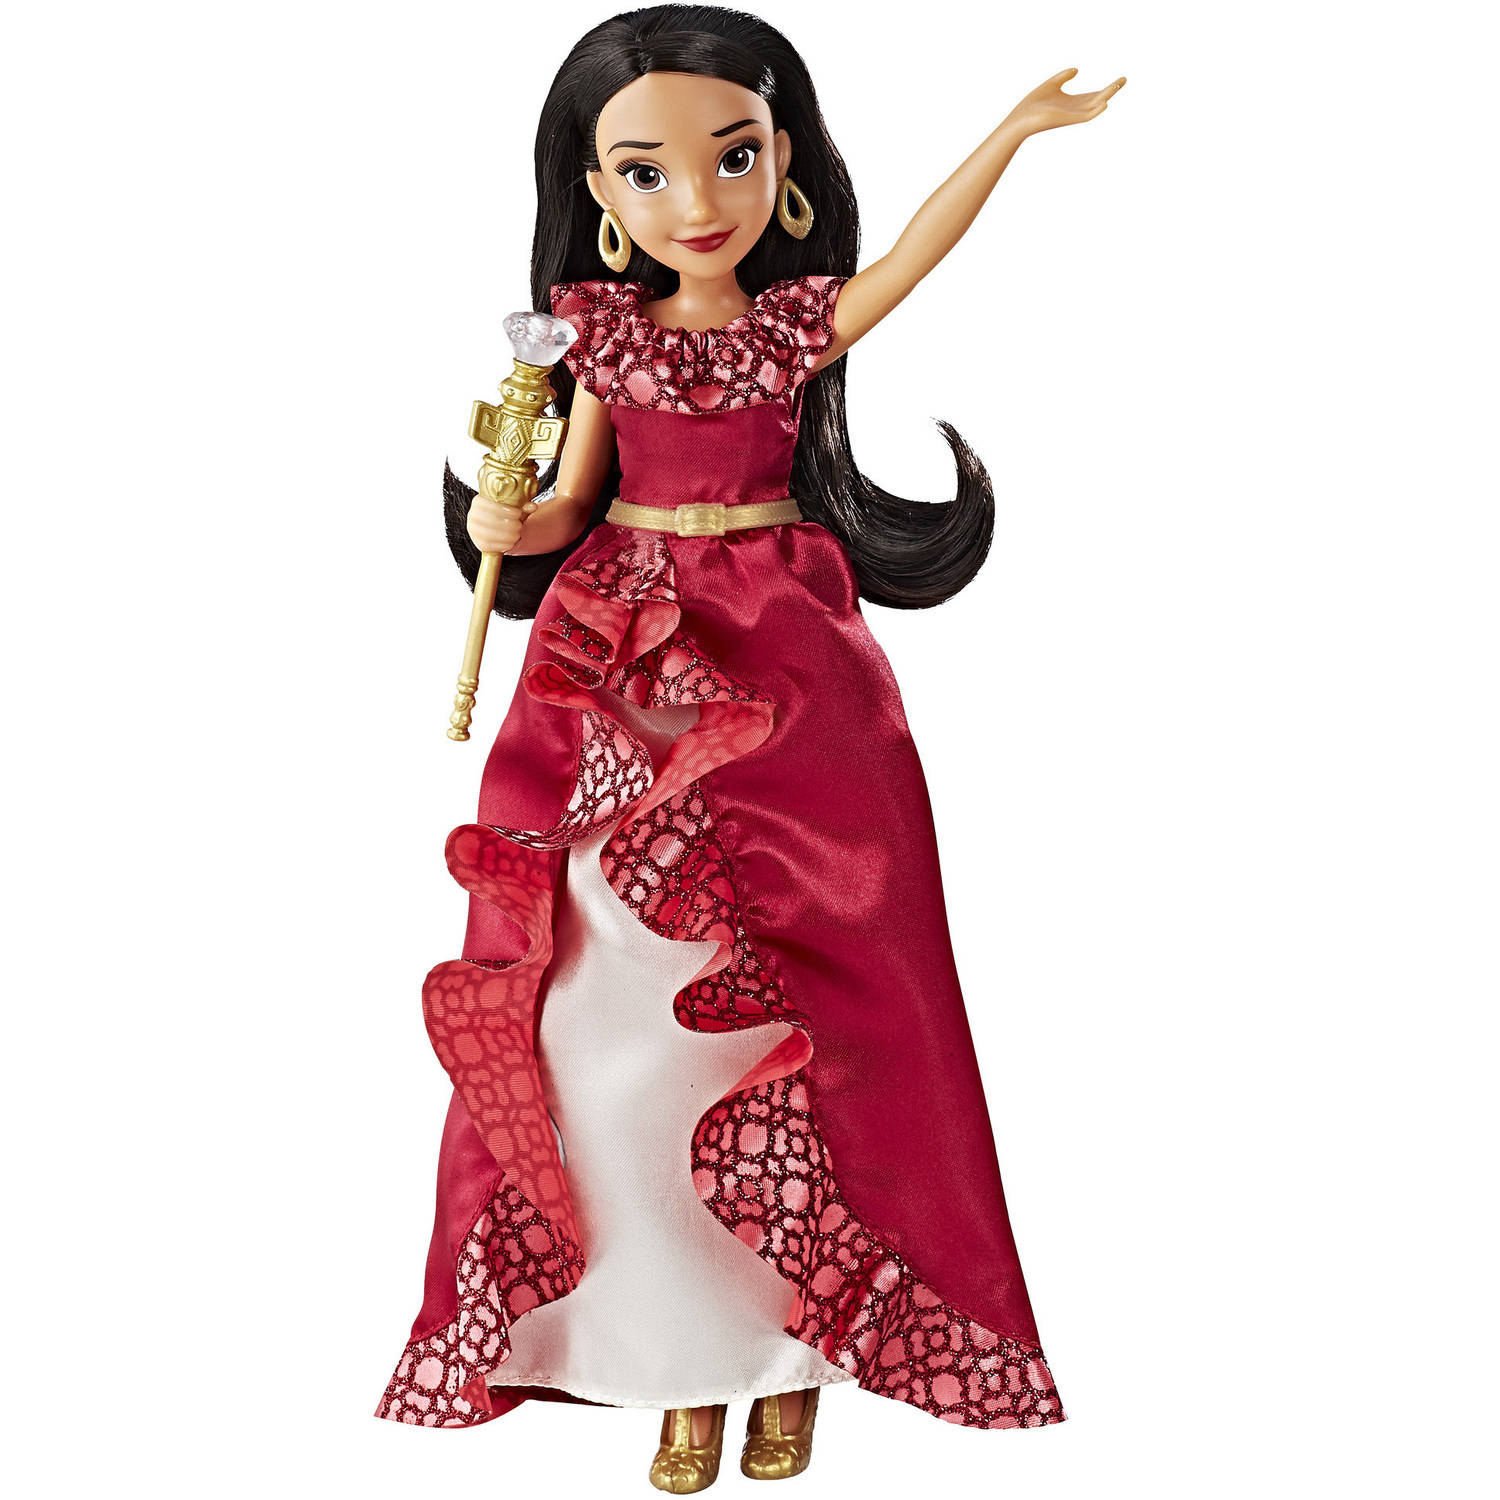 Disney Elena of Avalor Power Scepter